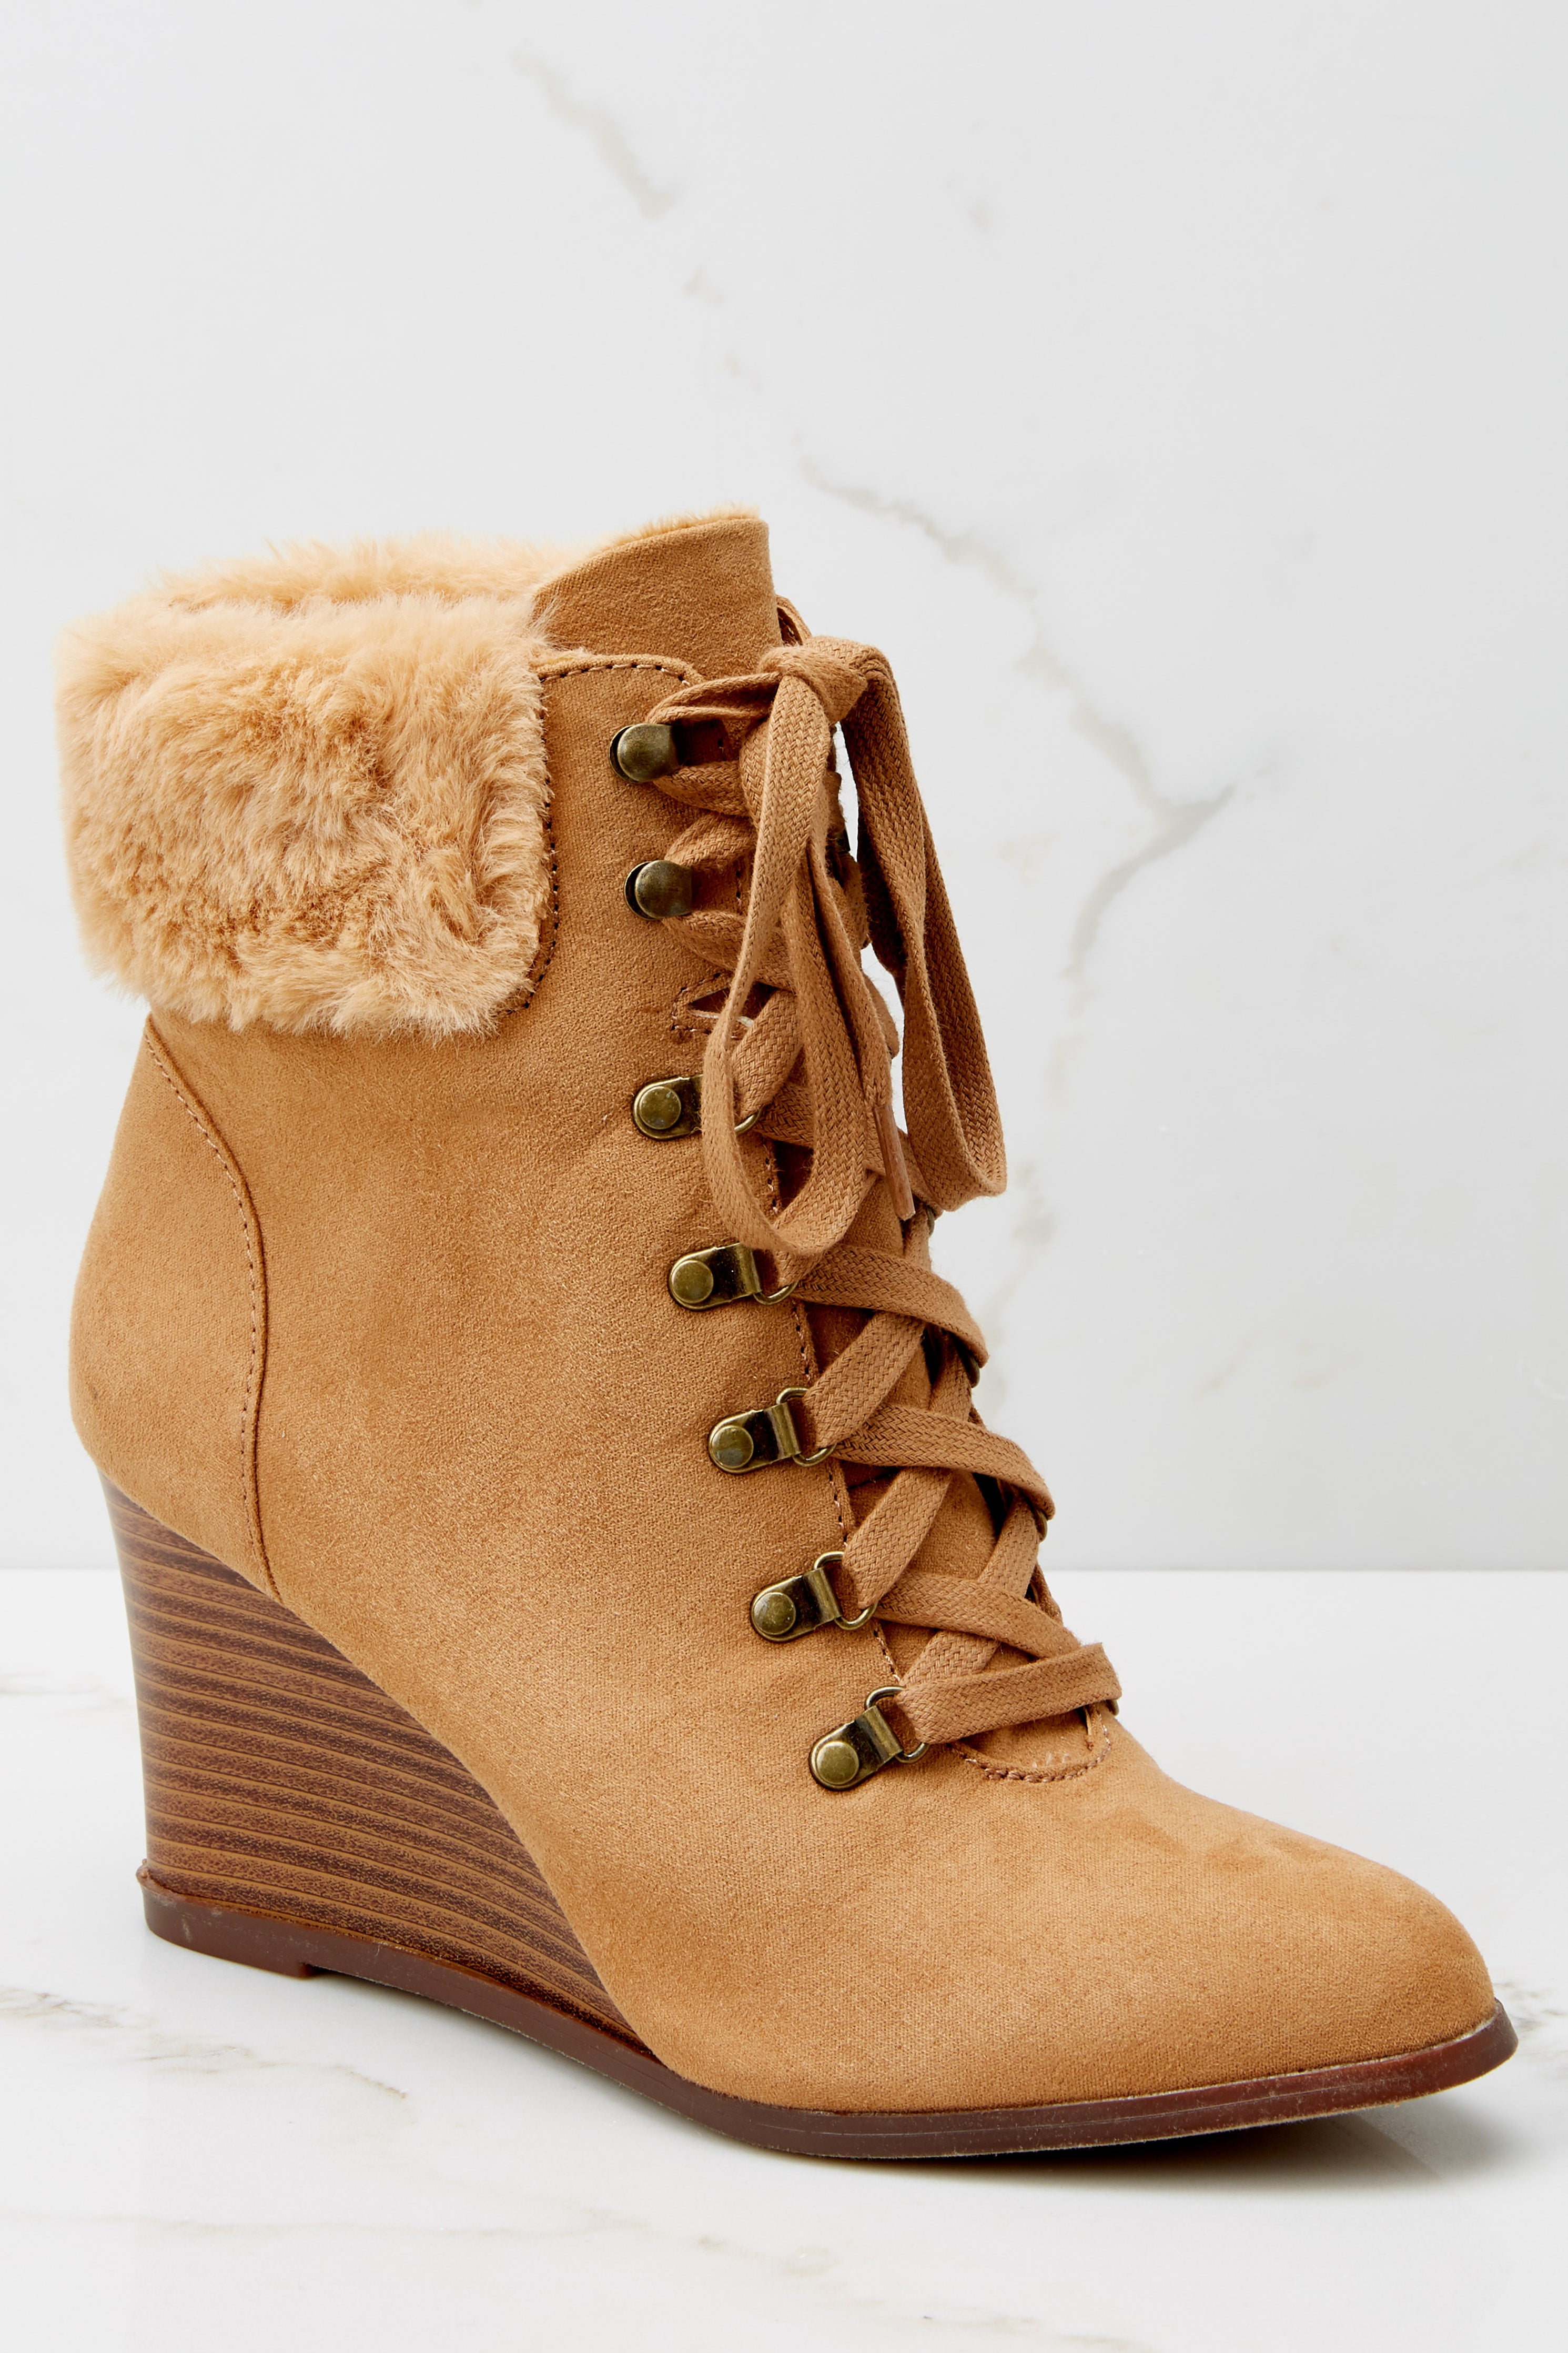 5 A New Way Tan Lace Up Wedge Booties at reddress.com